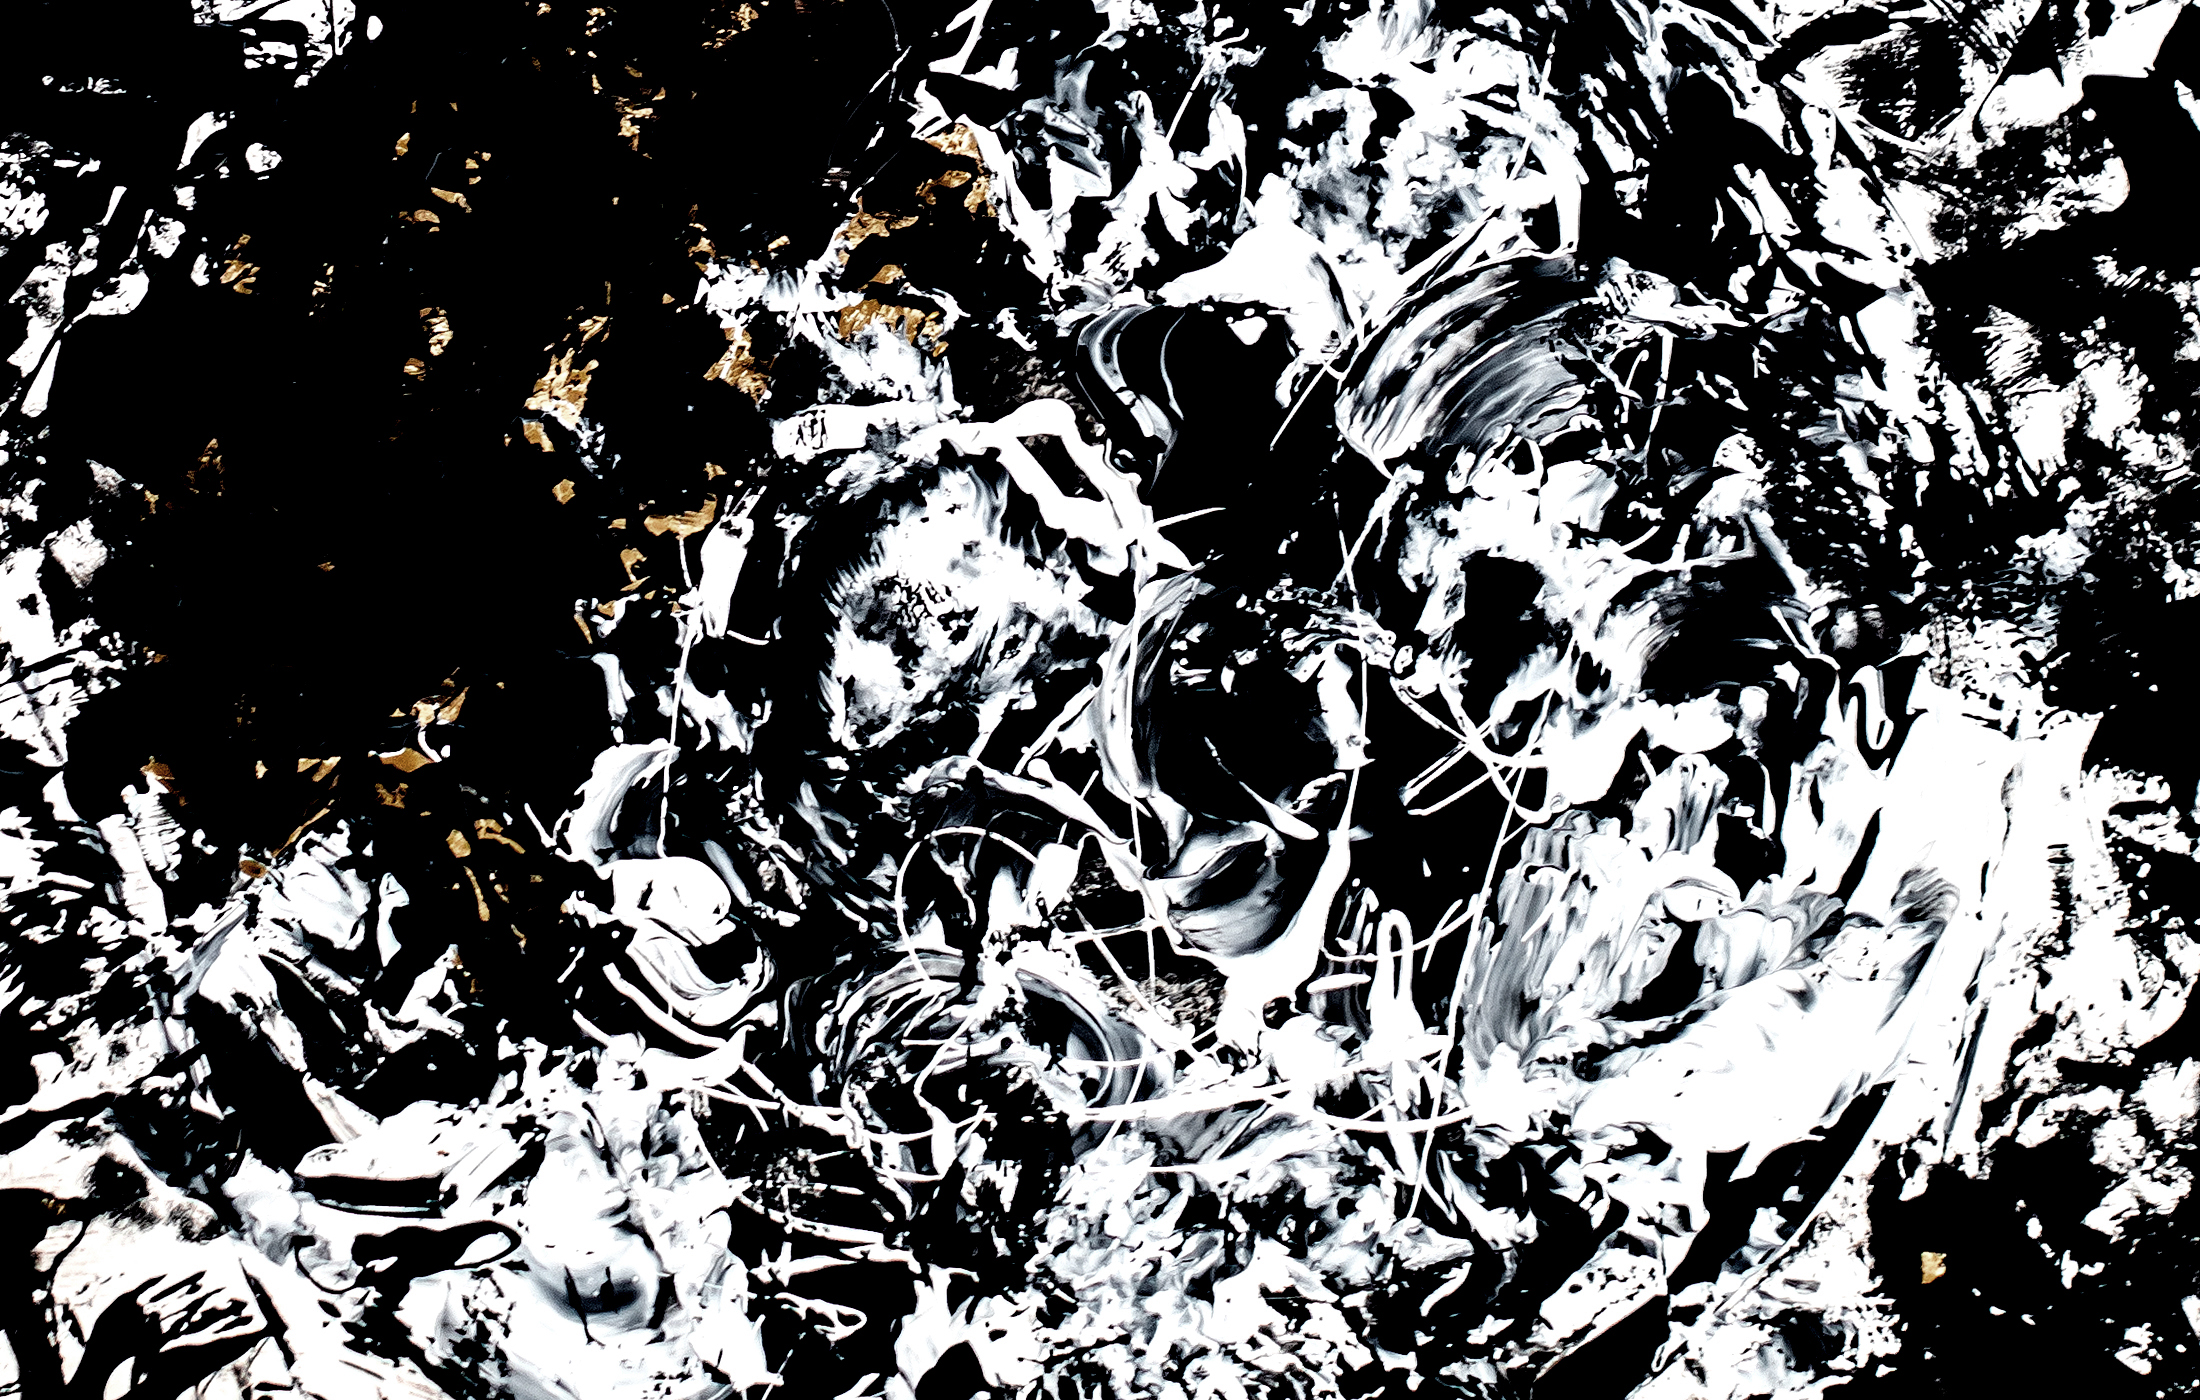 Agathe Toman Amour IV Abstract Contemporary Art Painting Black and White Drawing Paint